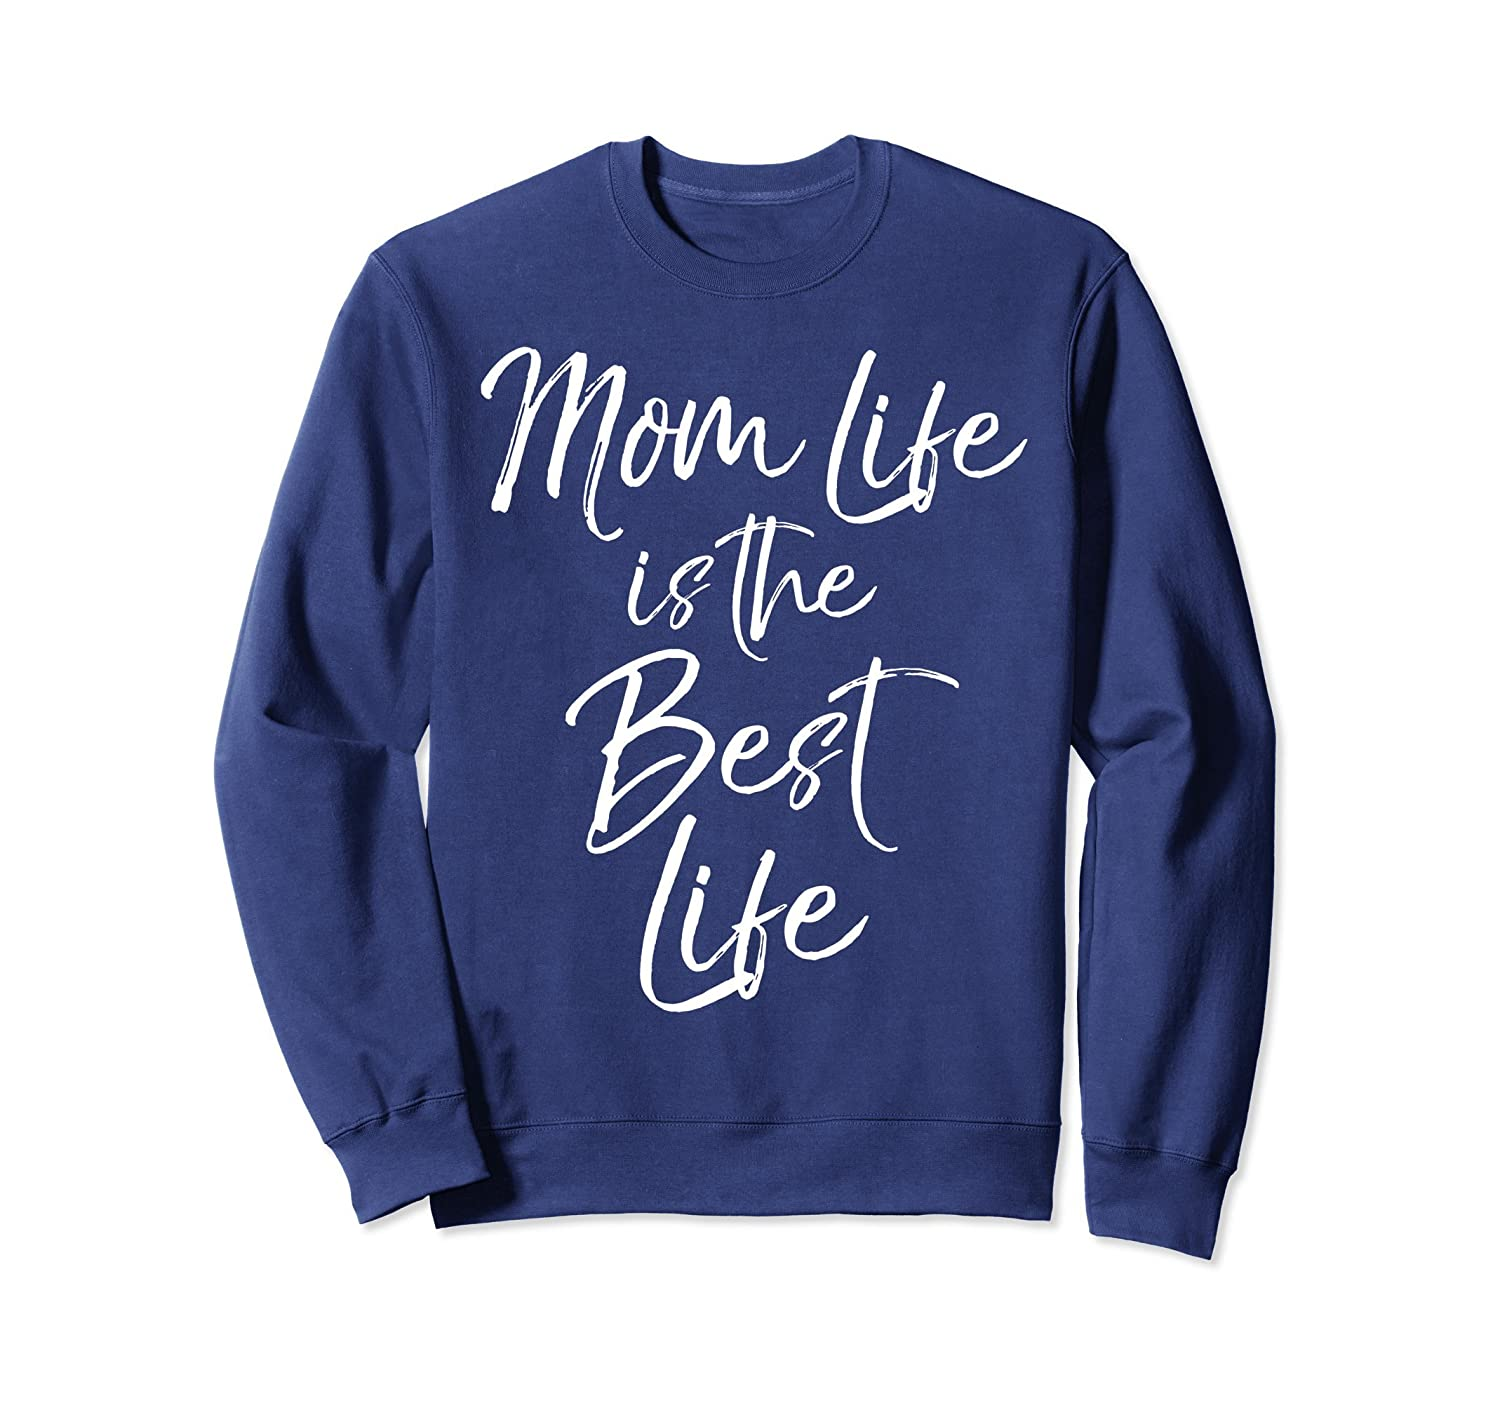 Mom Life is the Best Life Sweatshirt Cute Mother Sweats-alottee gift